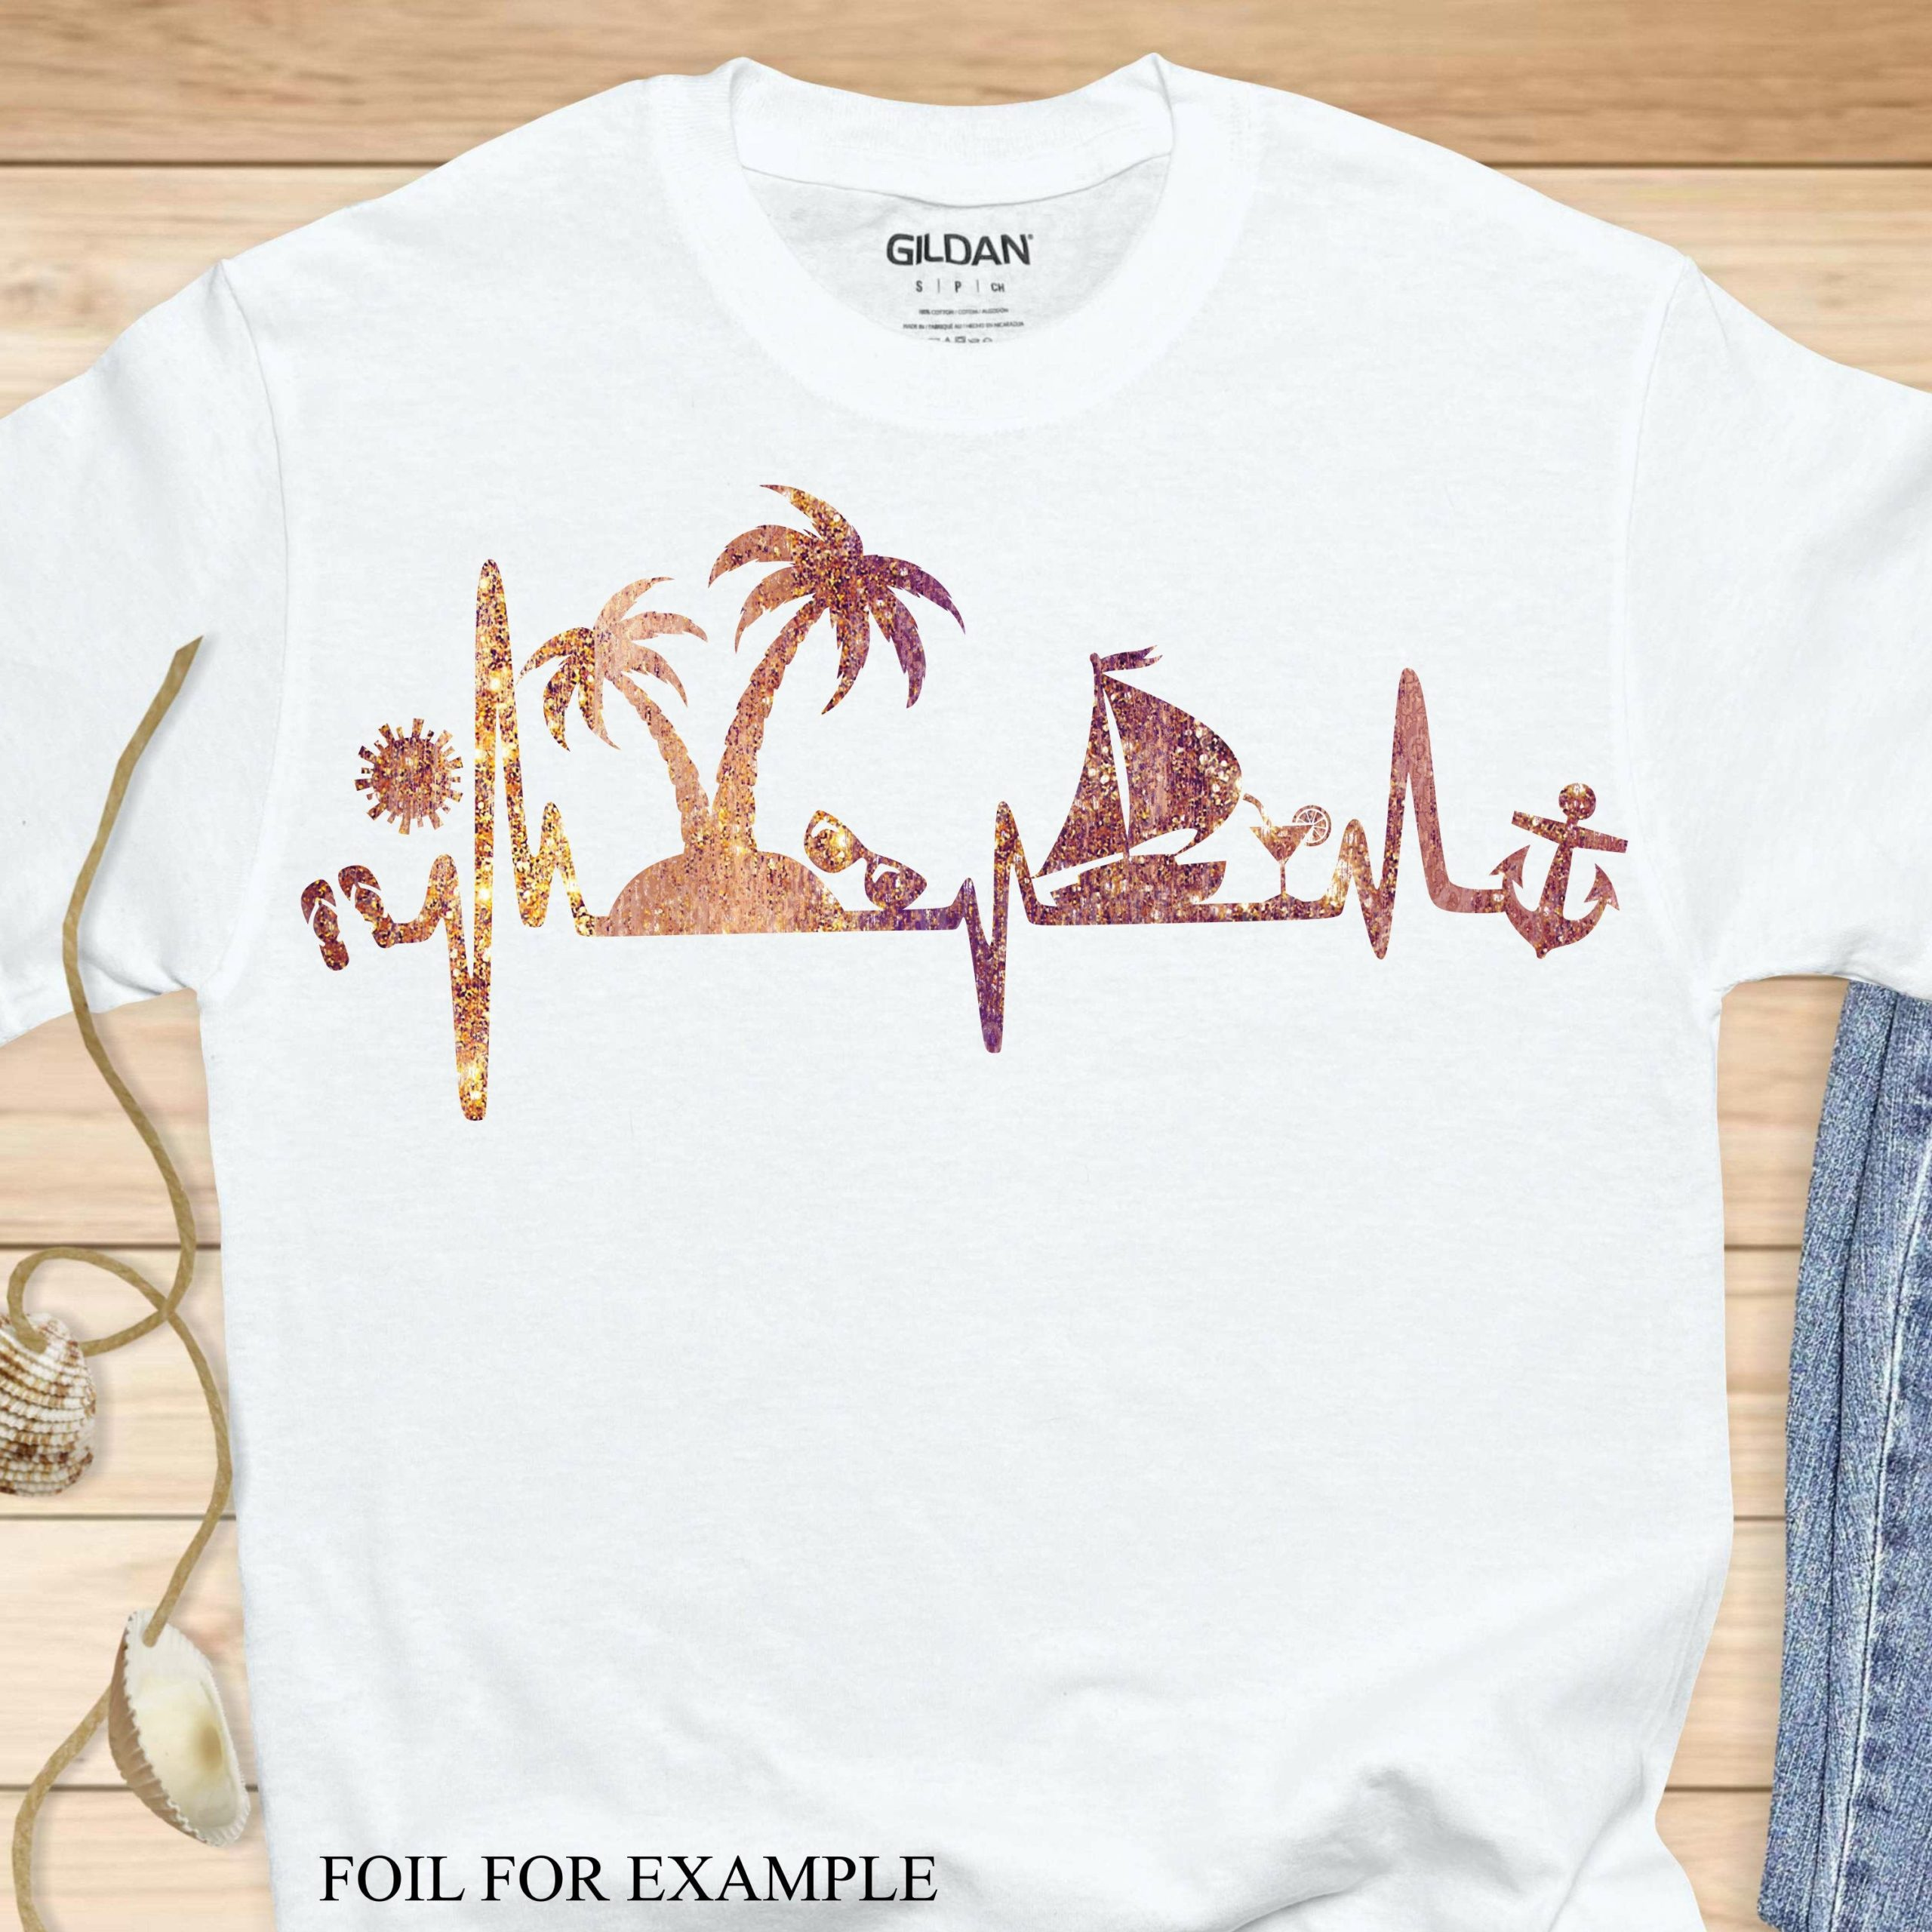 Vacation-heartbeat-svgbeach-svgrope-svgnautical-svgsummer-svganchor-rope-svgtshirt-svgsvg-for-cricut-vacay-mode-svgsilhouette-dxf-5ef78a8e